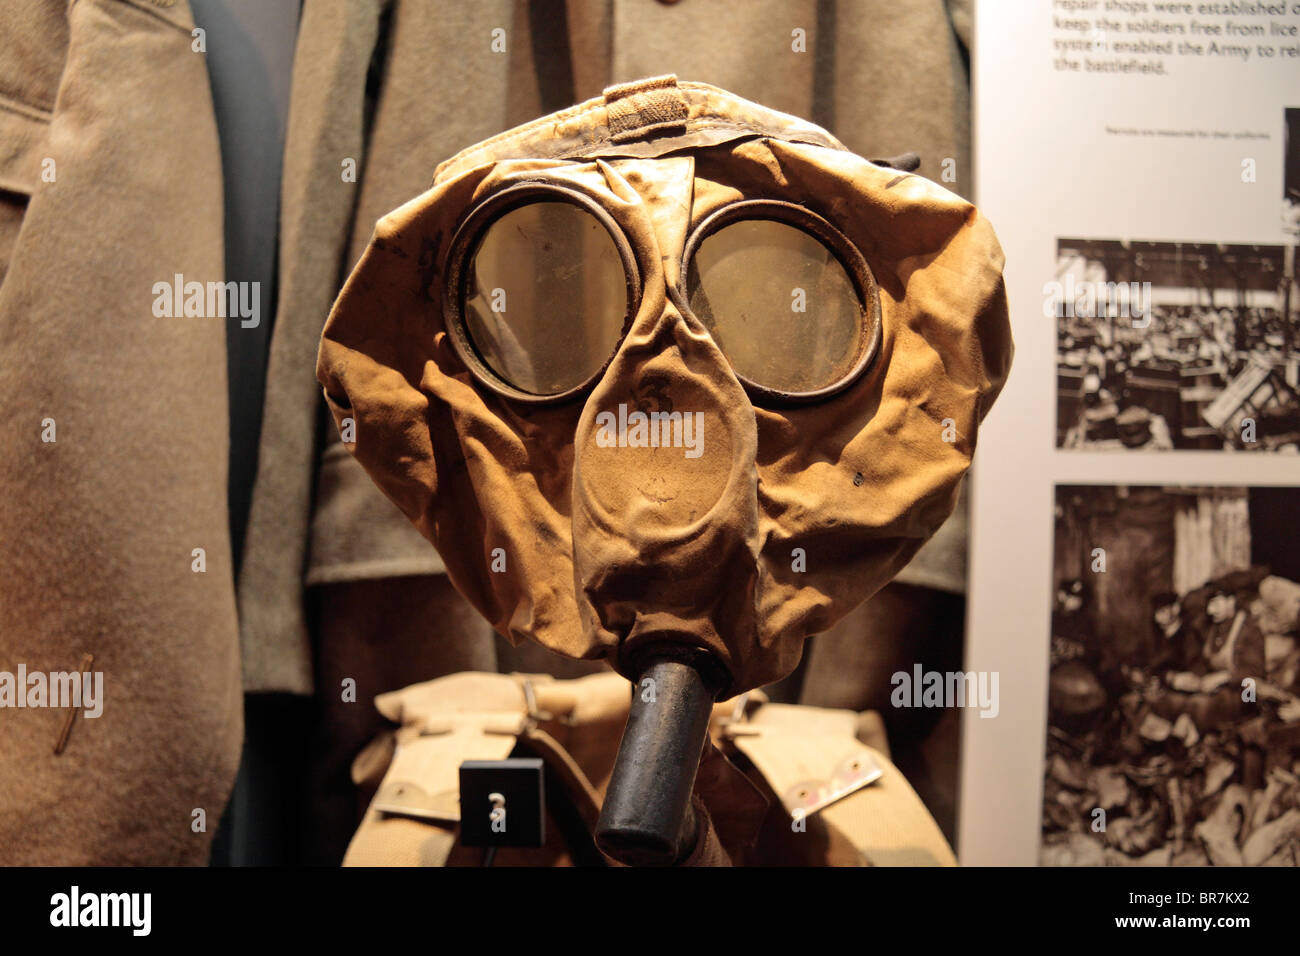 A British small box respirator on display at the Imperial War Museum, London, UK. - Stock Image